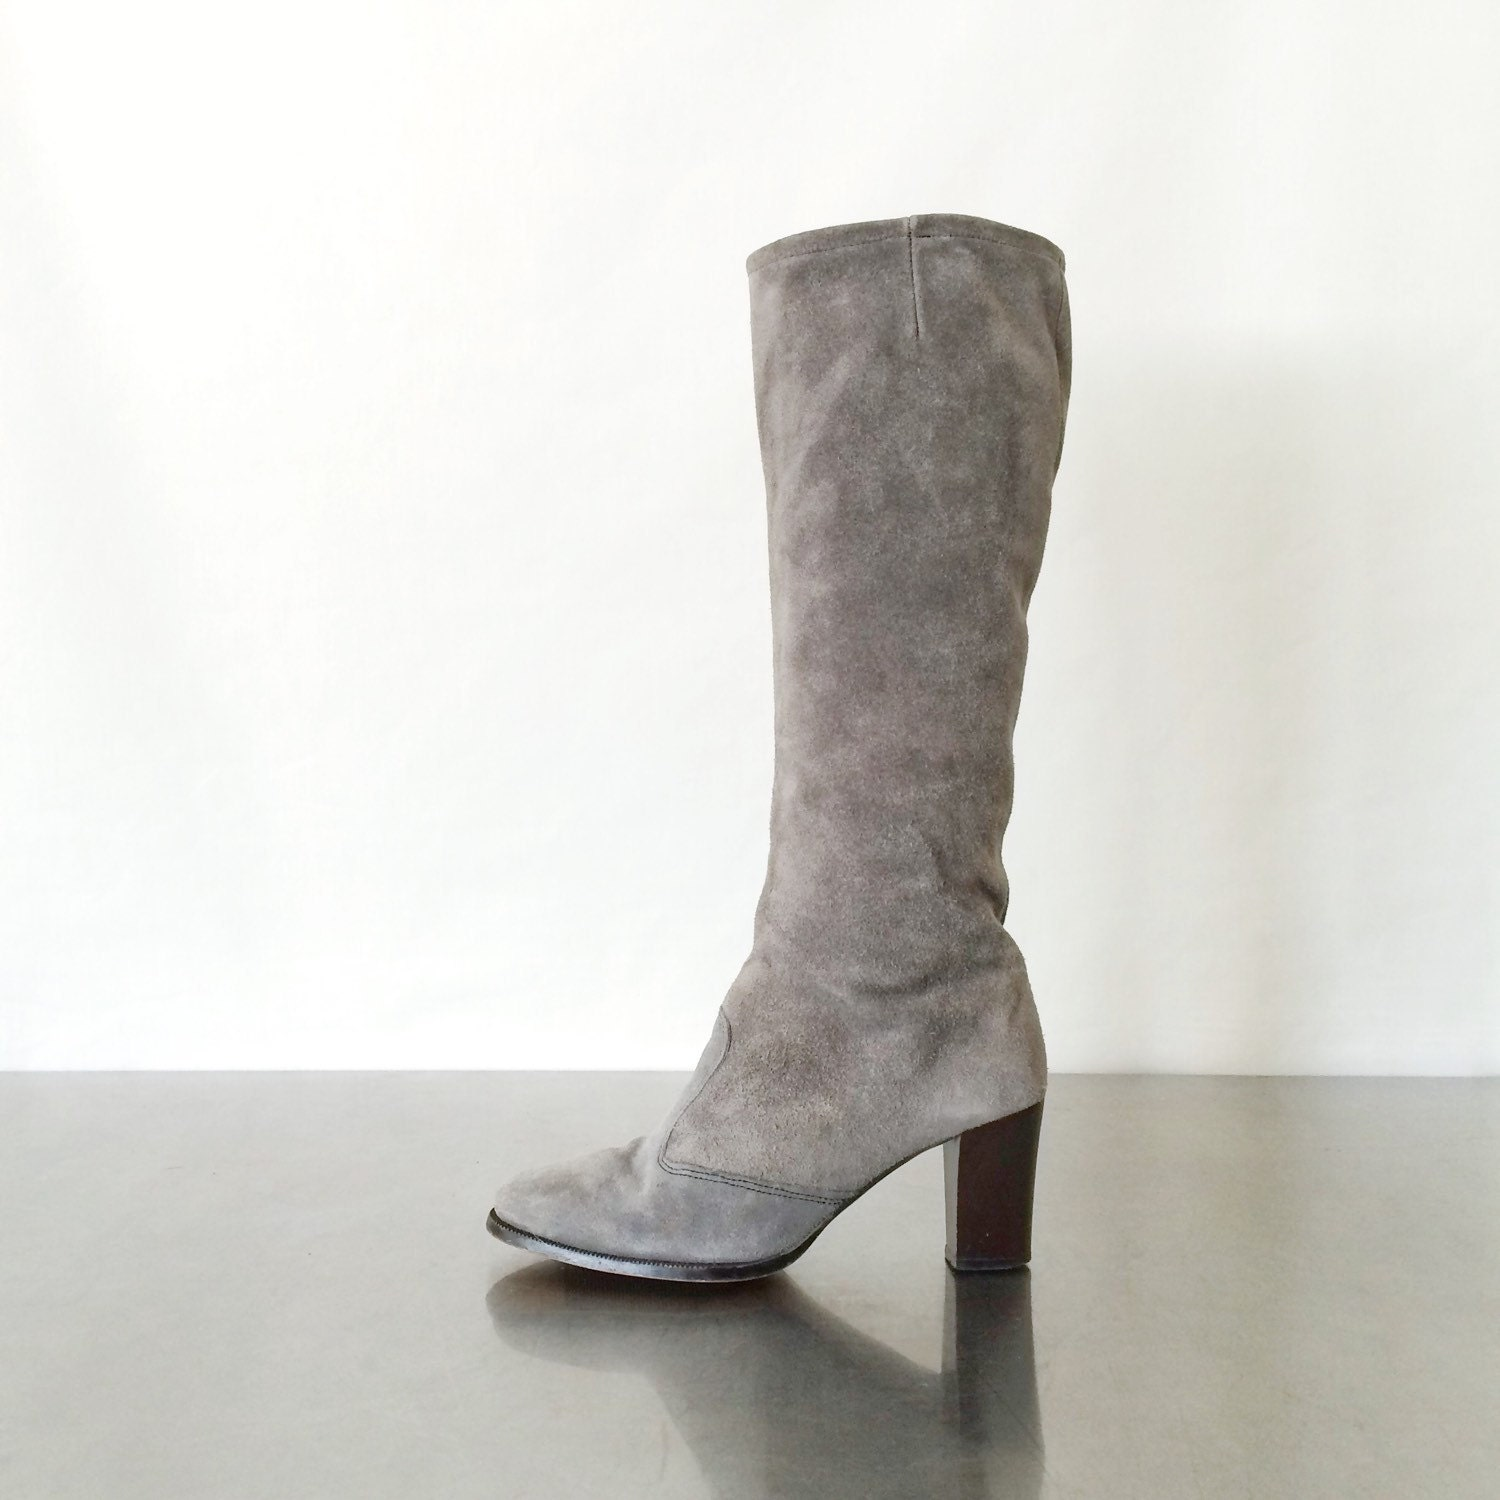 suede boots vintage knee high gray leather boots